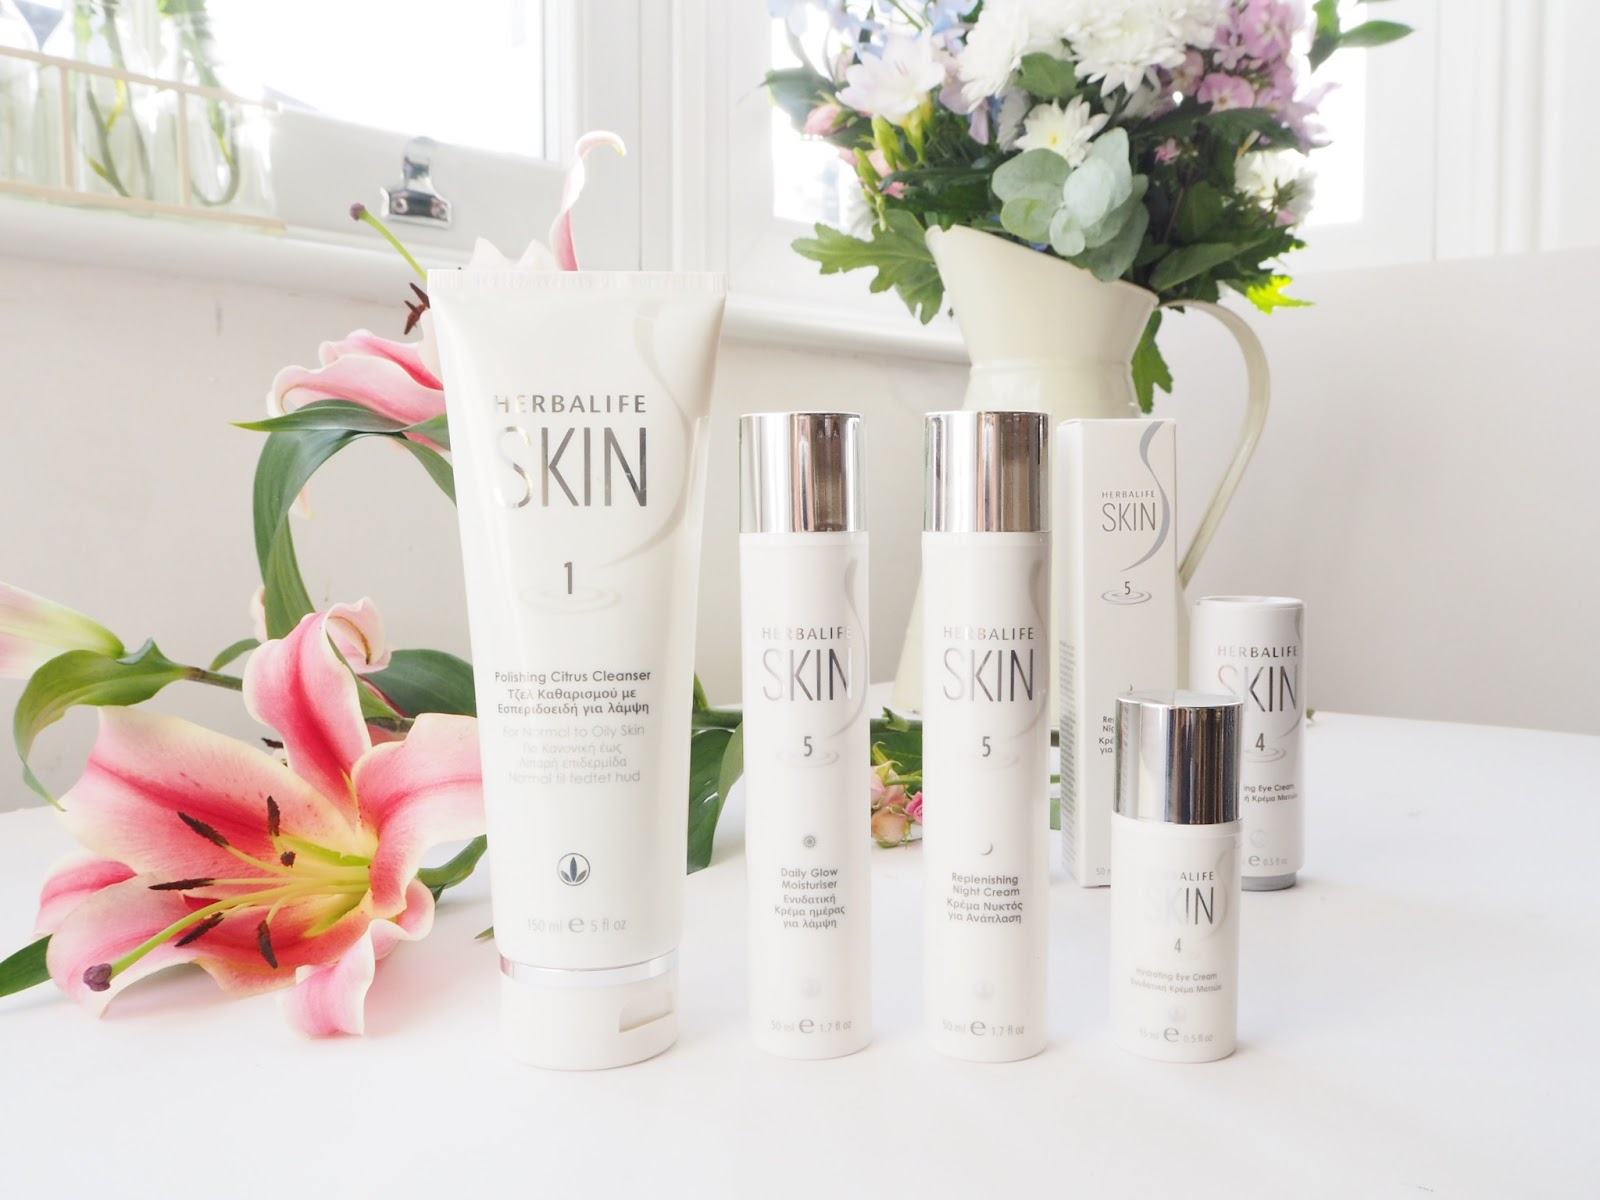 Care herbal life product skin - In My Ongoing Quest For Perfect Skin Over The Past 6 Weeks I Ve Been Using Some Products From Herbalife Skin A Brand That Promises Fast Results For